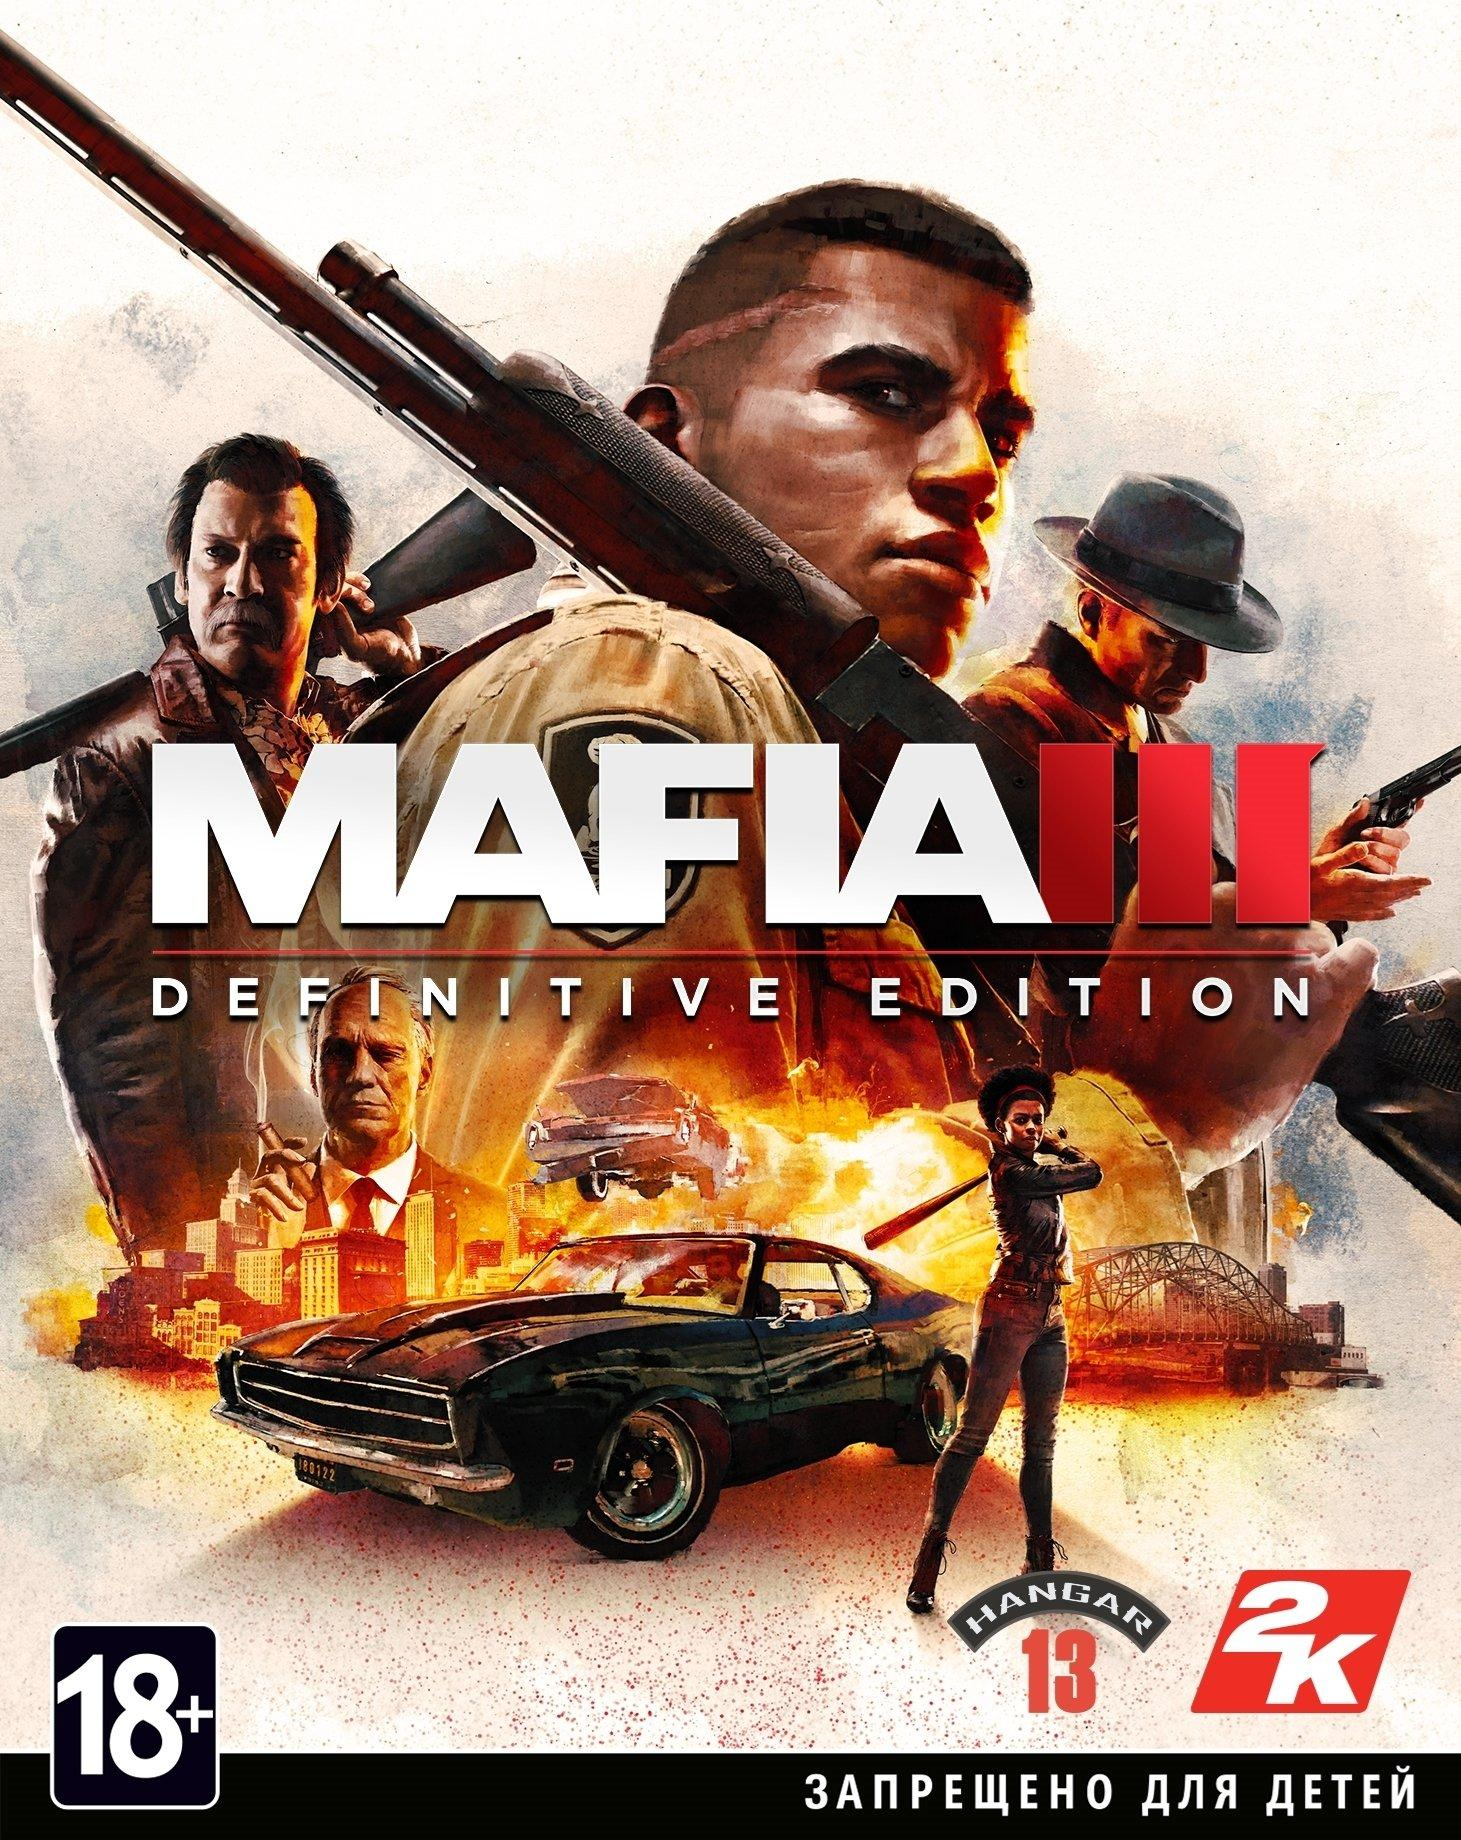 Mafia III: Definitive Edition (Steam) | ROW (054a43e0-861e-4256-9e52-42f567090877)